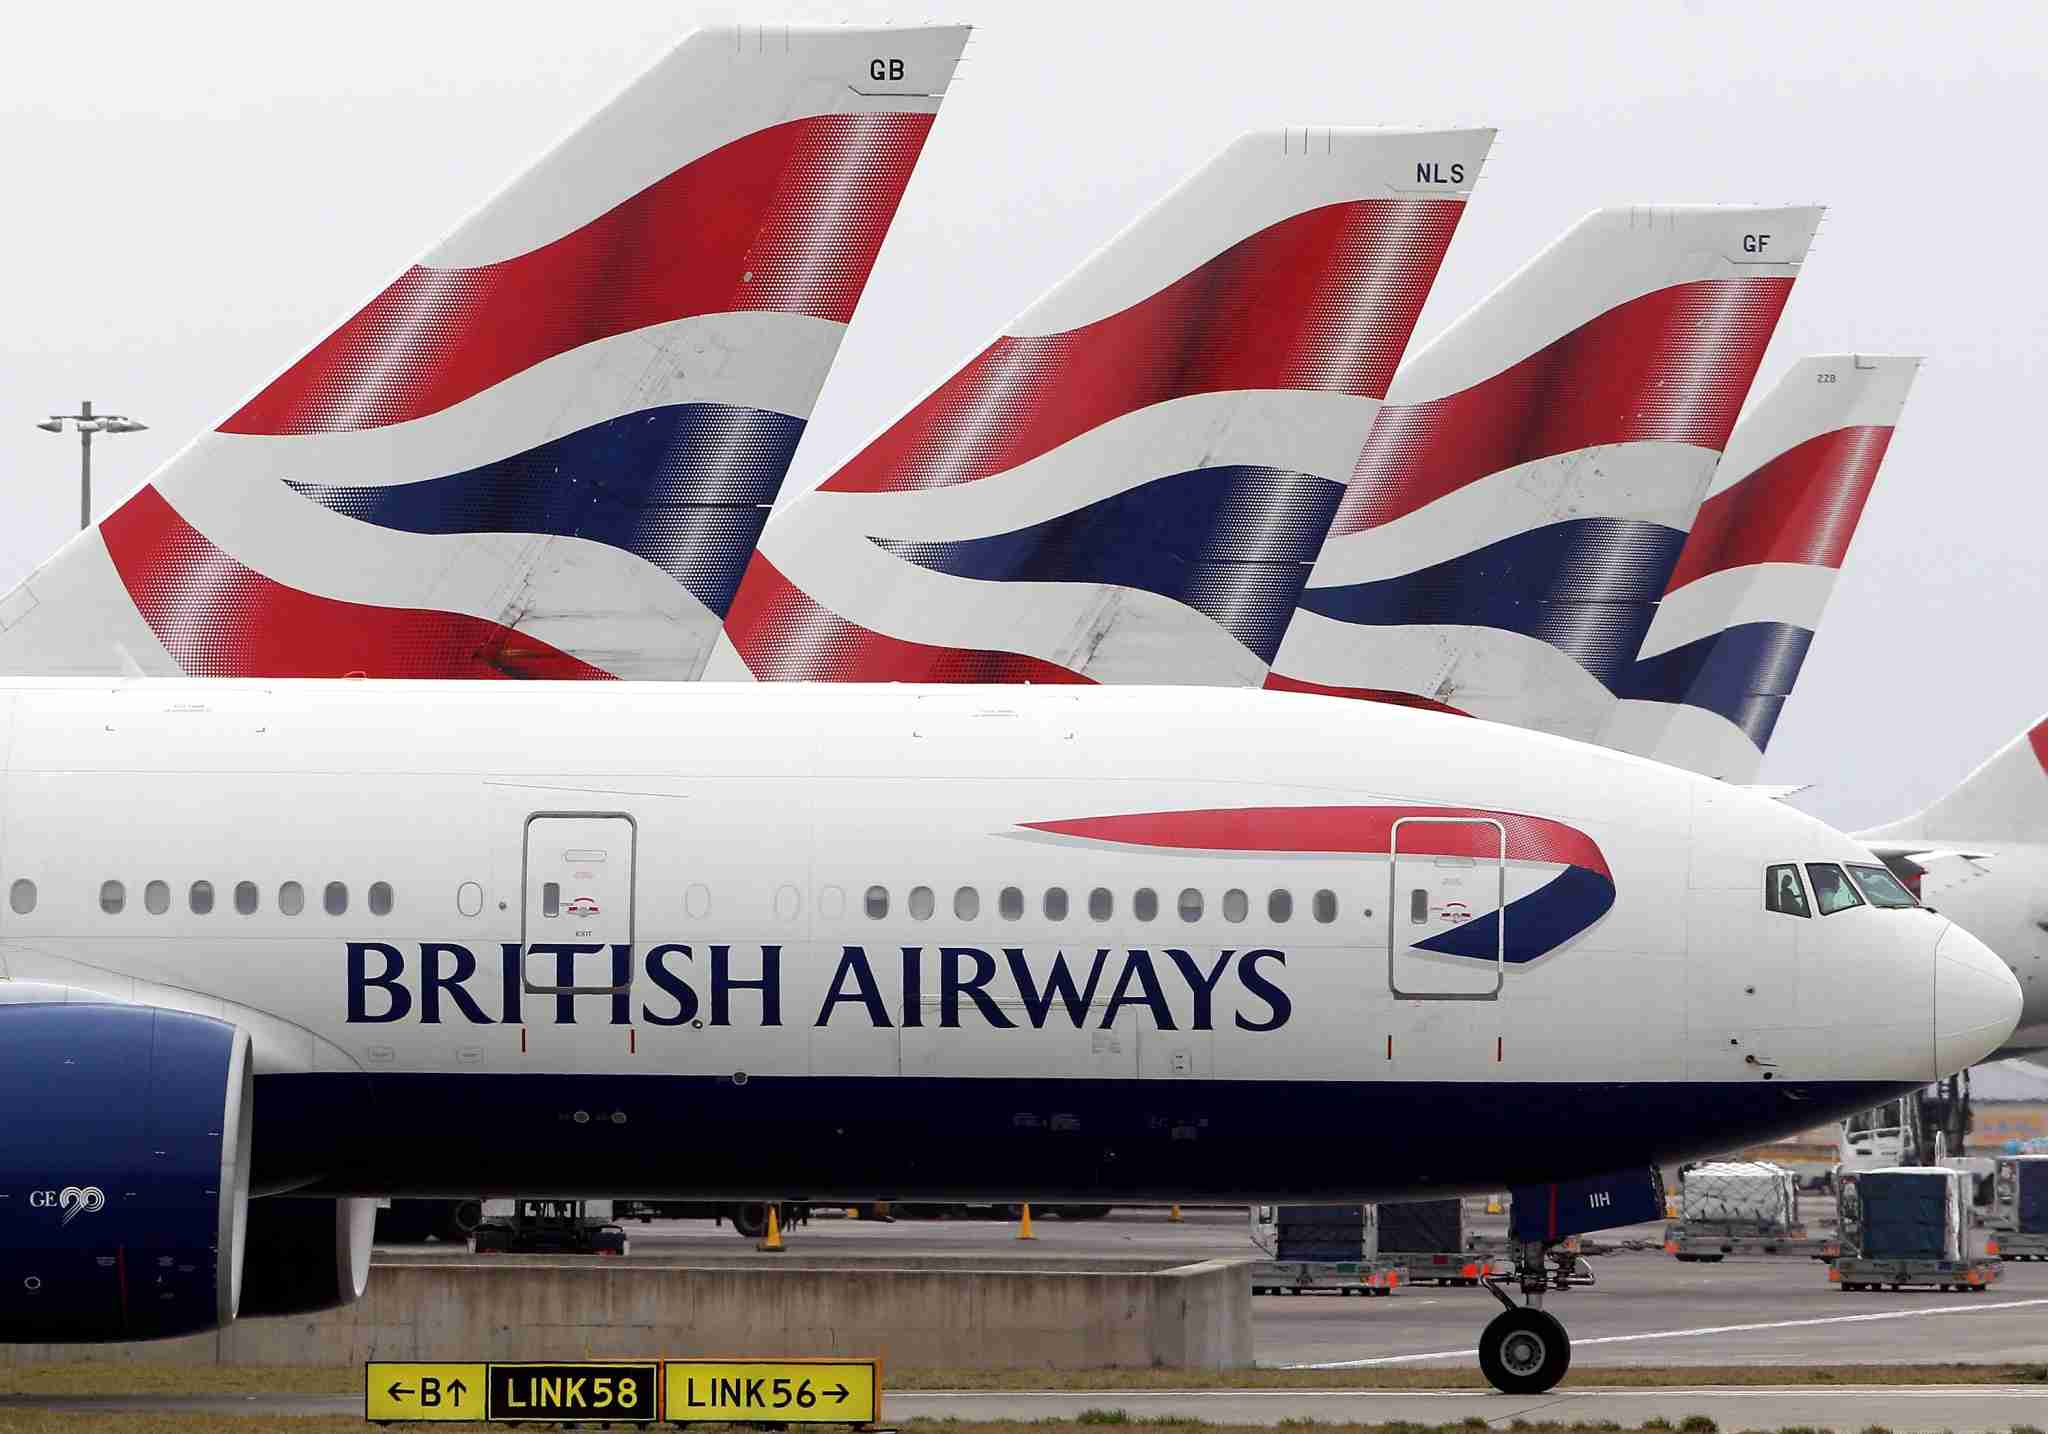 LONDON, ENGLAND - MARCH 19: A British Airways plane prepares to depart Heathrow Airport on March 19, 2010 in London, England. The planned three day strike by BA cabin crew this weekend will now go ahead as talks between the airline and the union Unite collapsed earlier today. (Photo by Dan Kitwood/Getty Images)